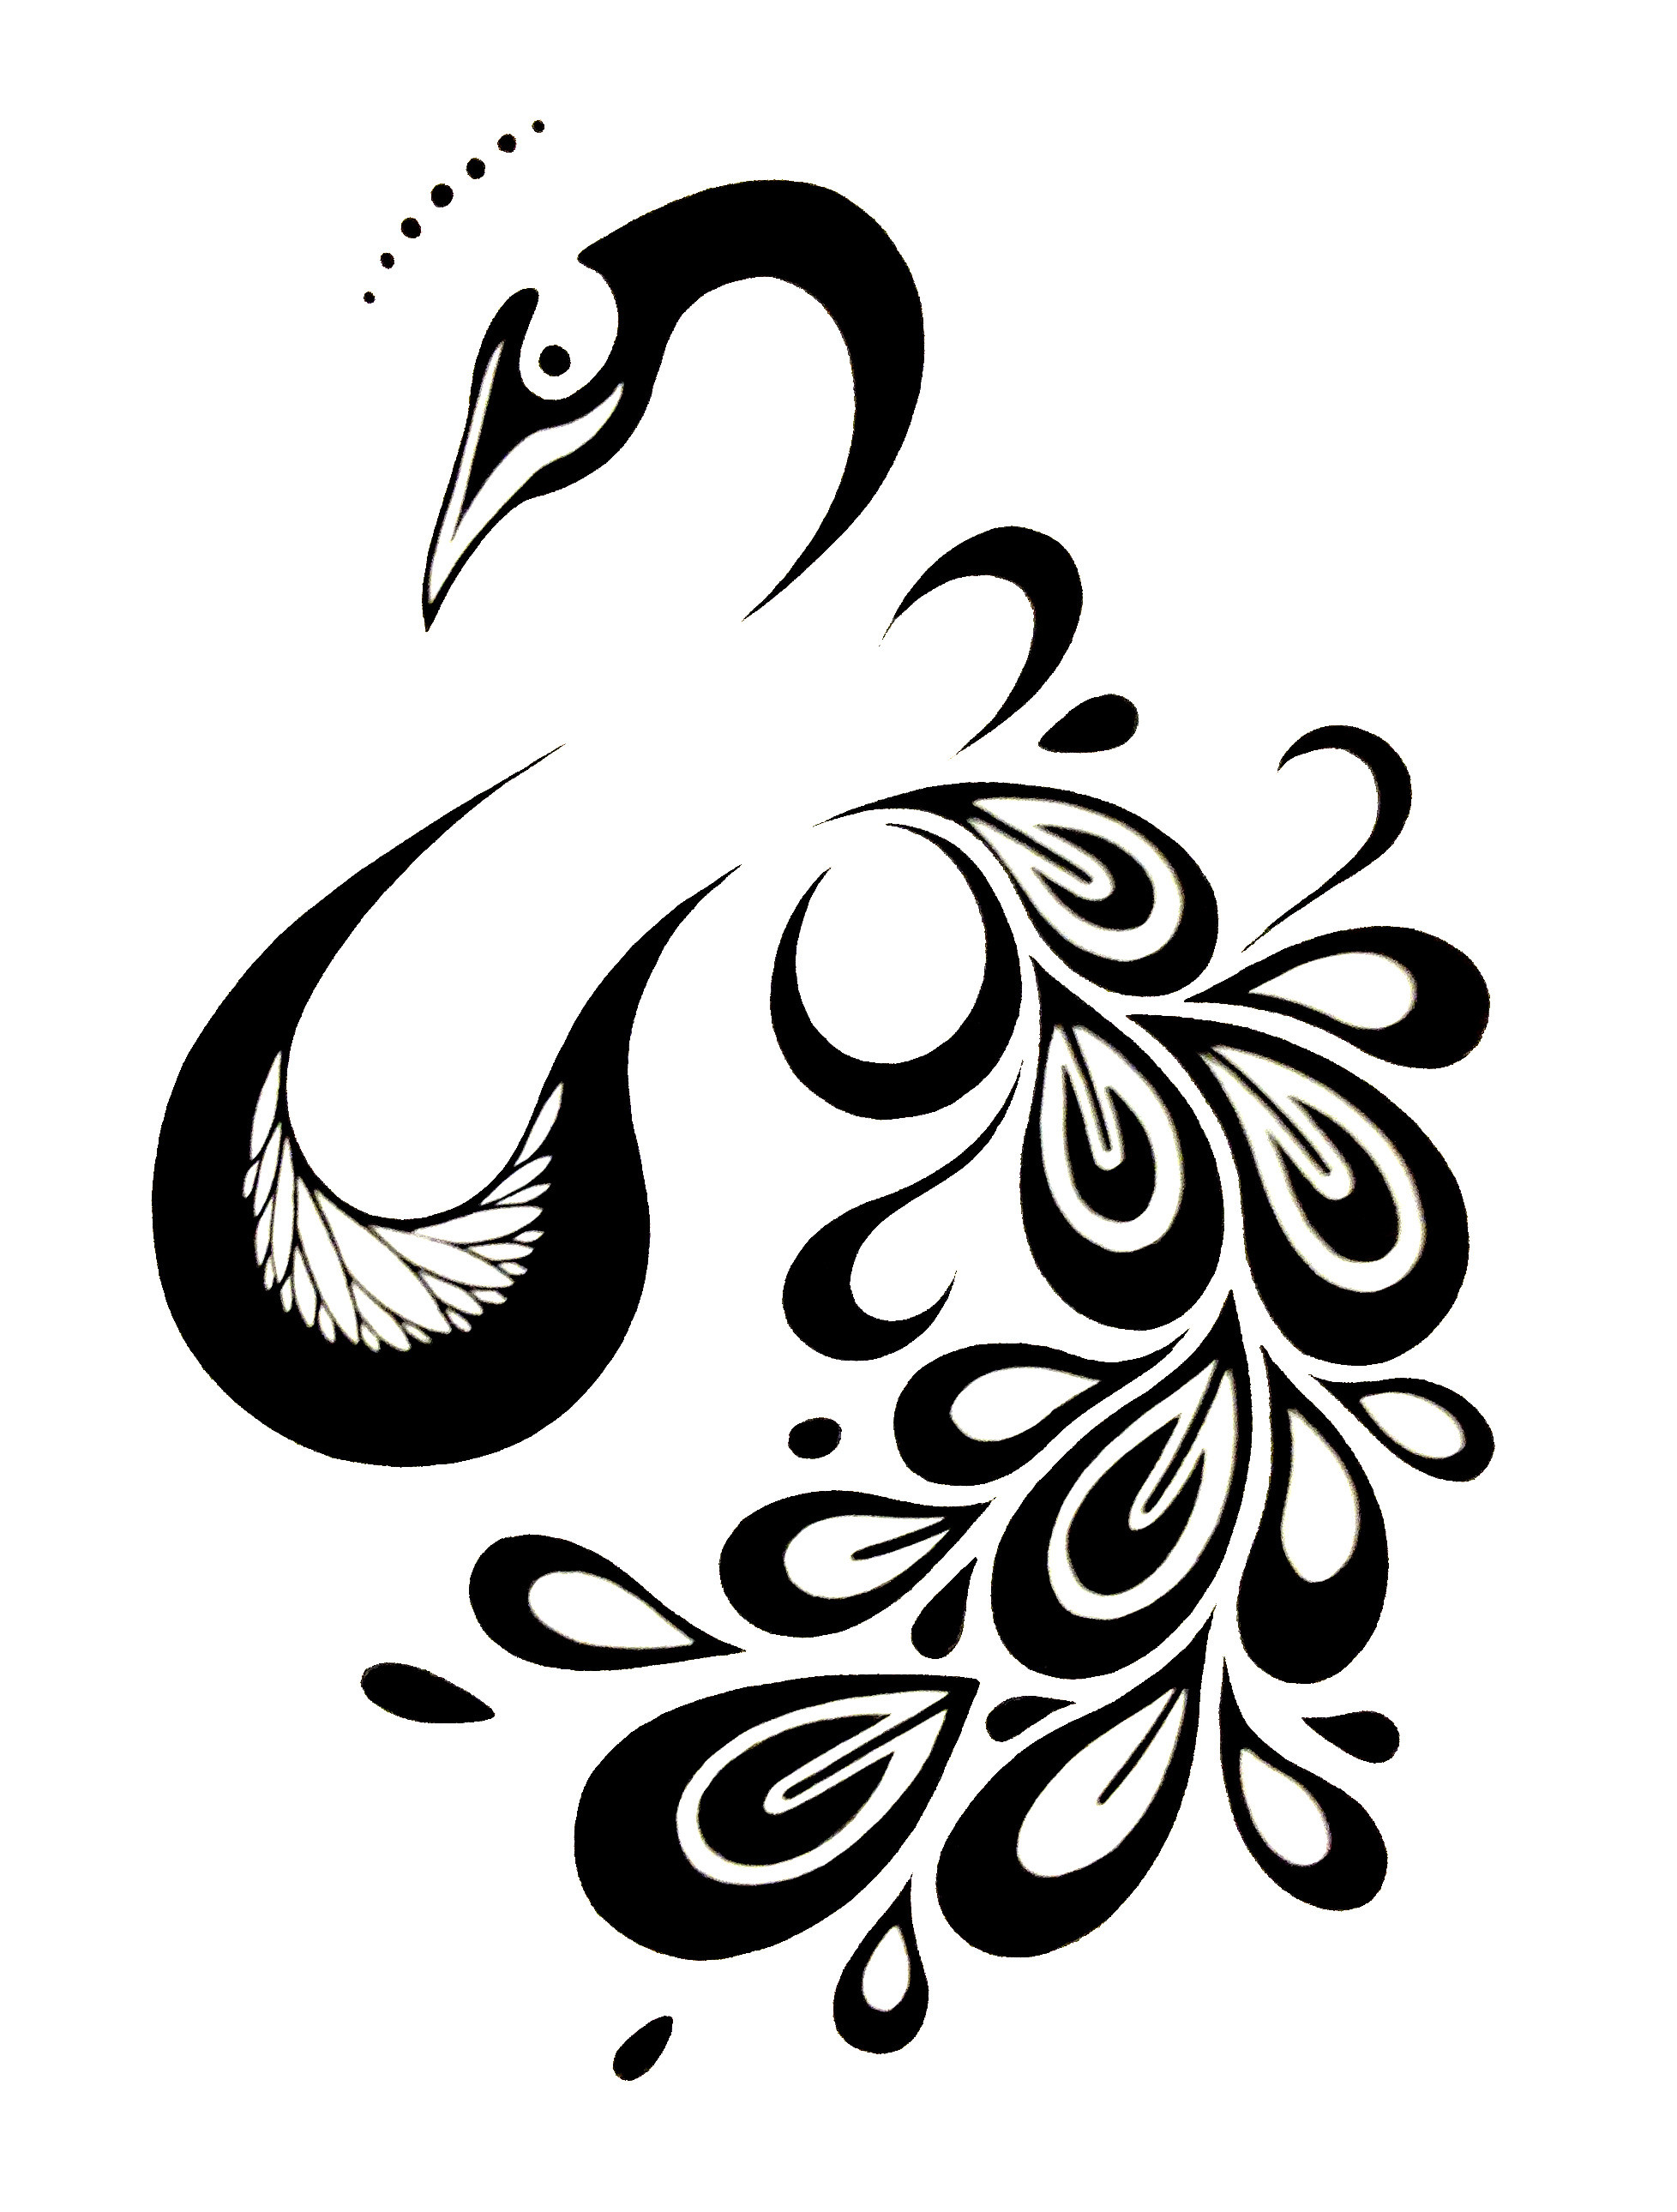 hight resolution of peacock tattoo design imgur